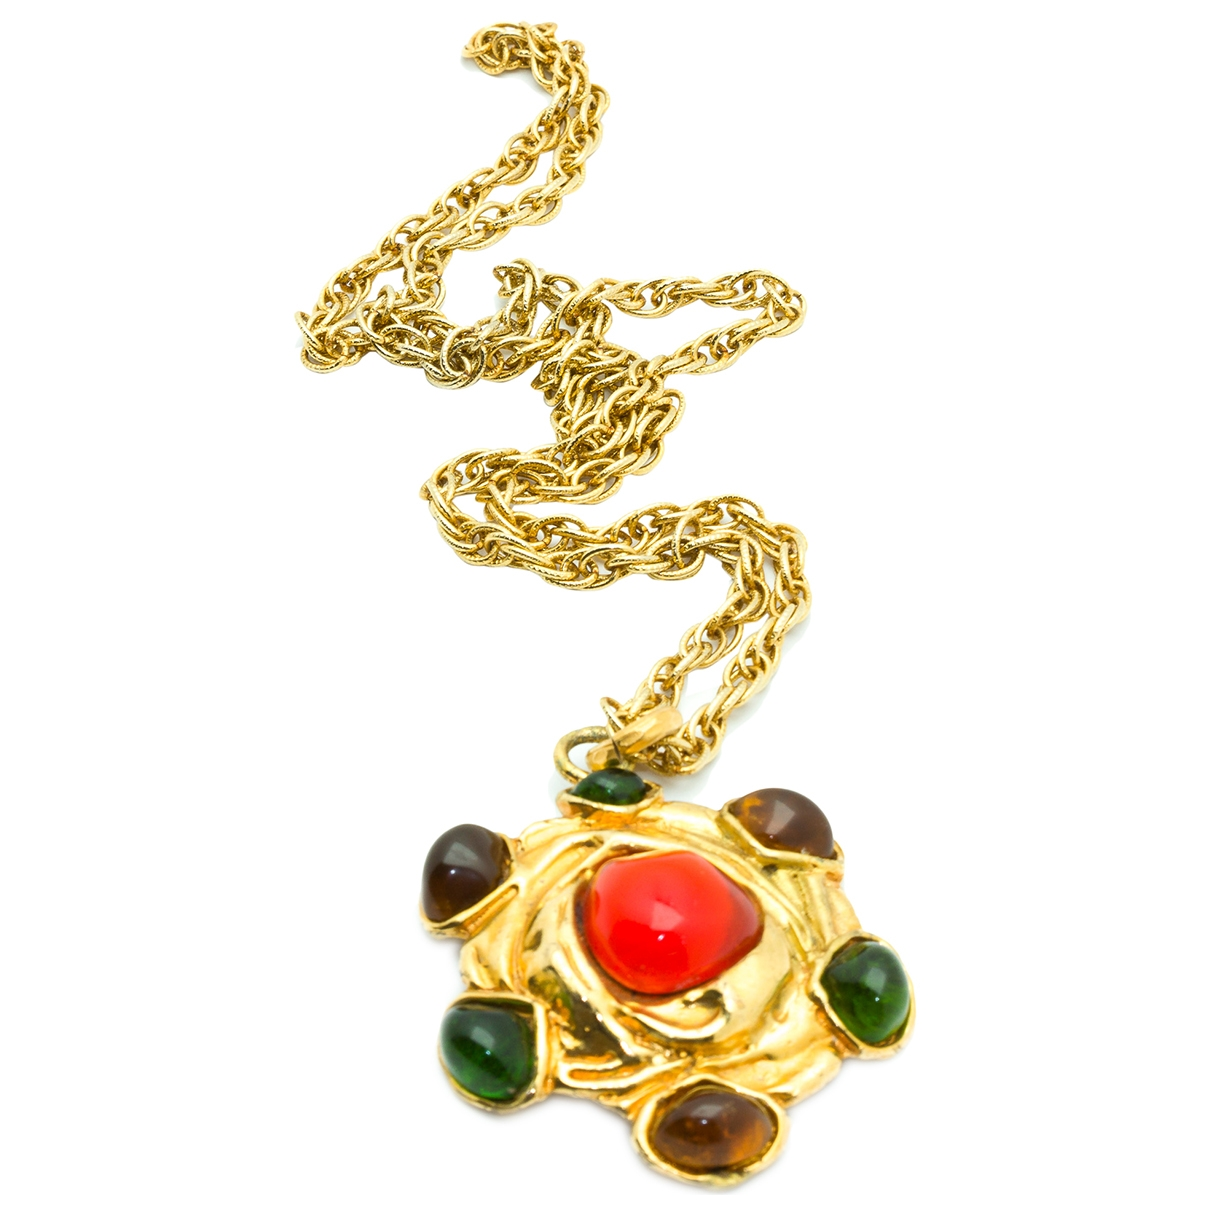 Christian Lacroix \N Gold Metal necklace for Women \N